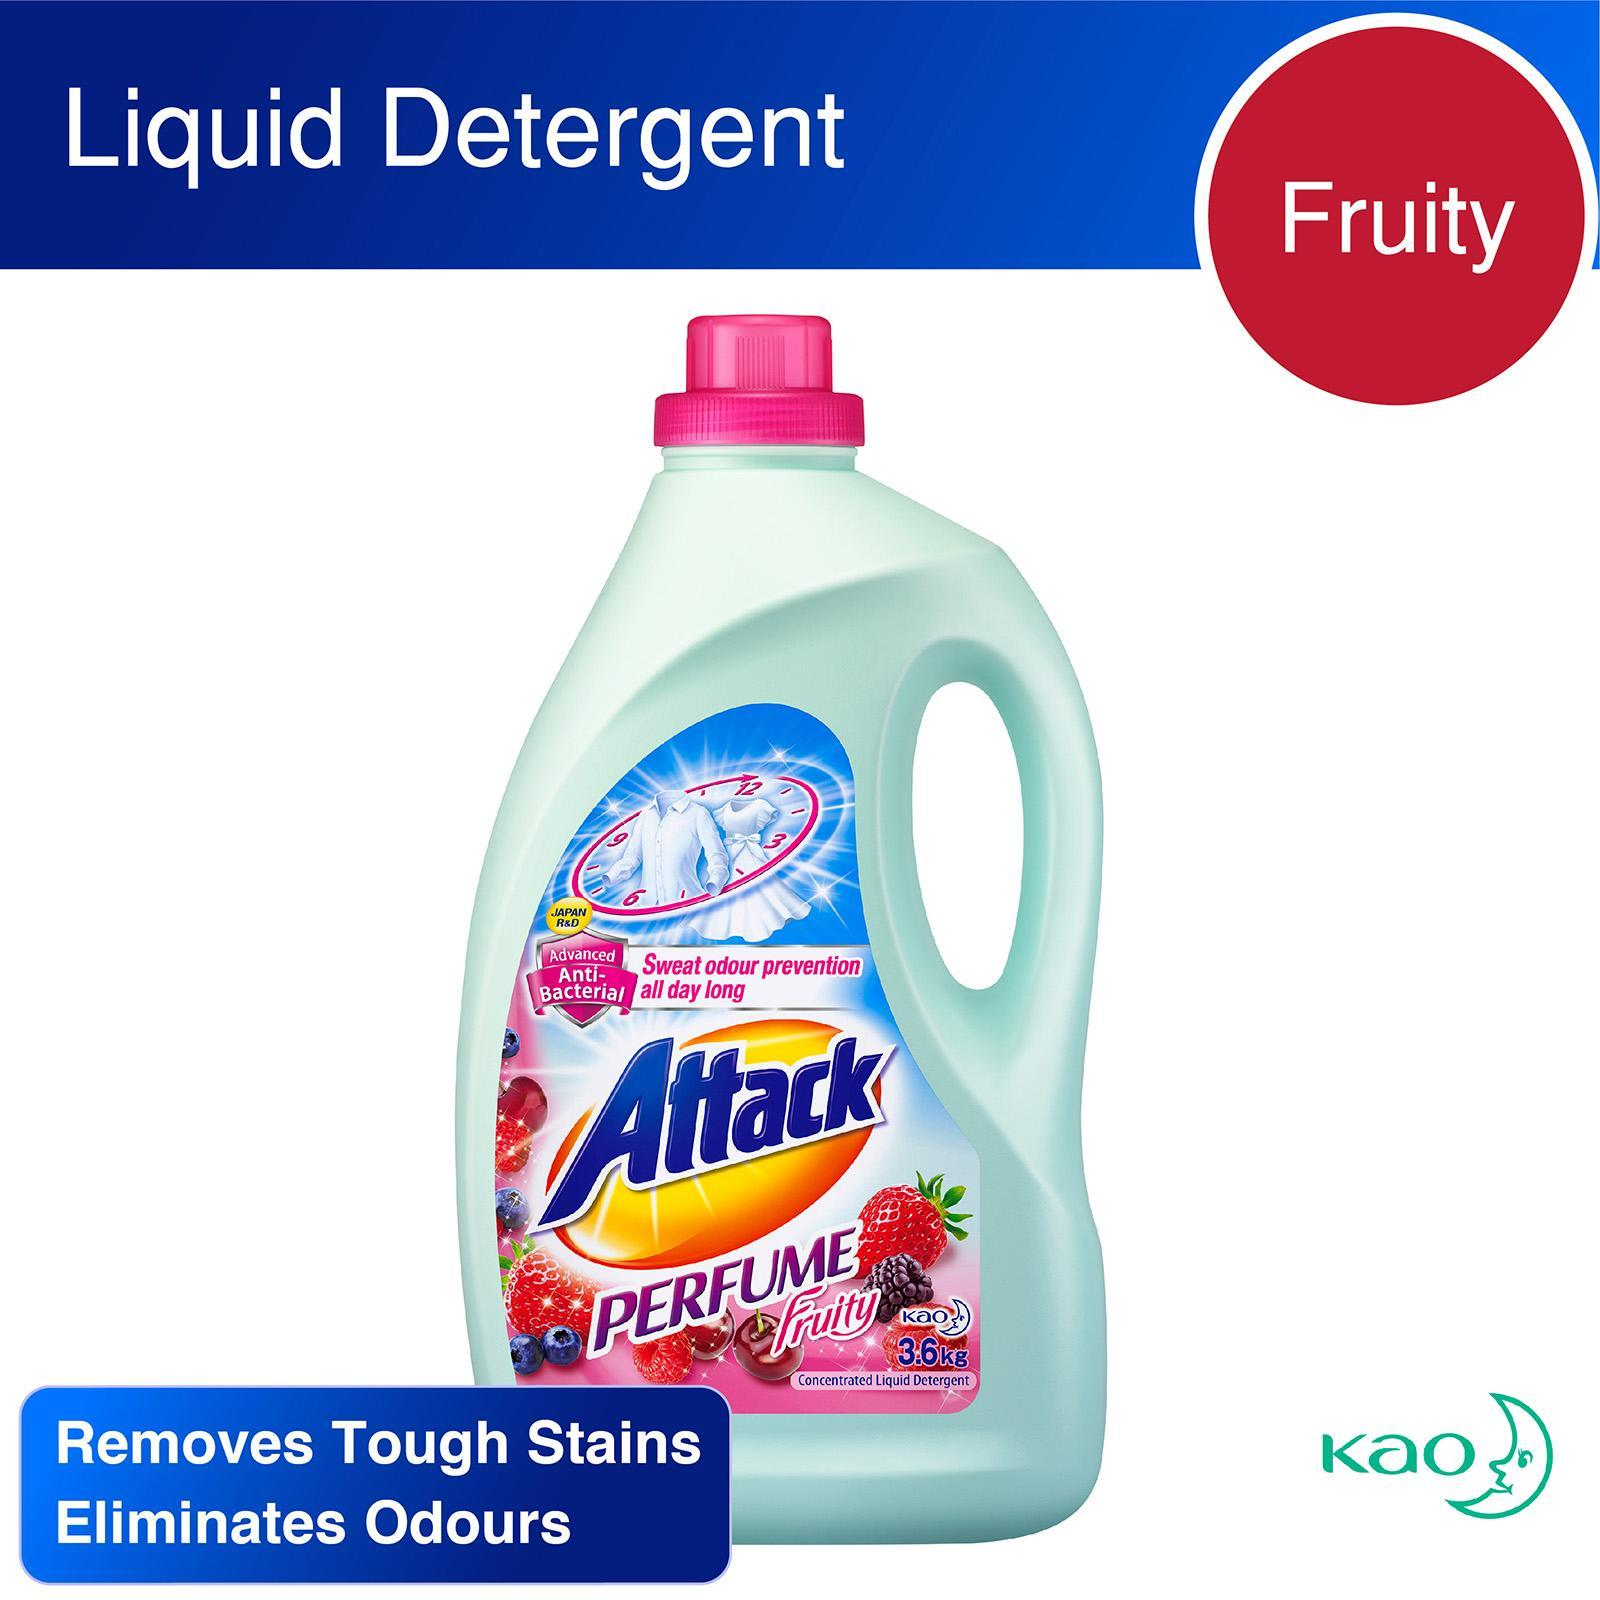 Attack Perfume Fruity Liquid Detergent